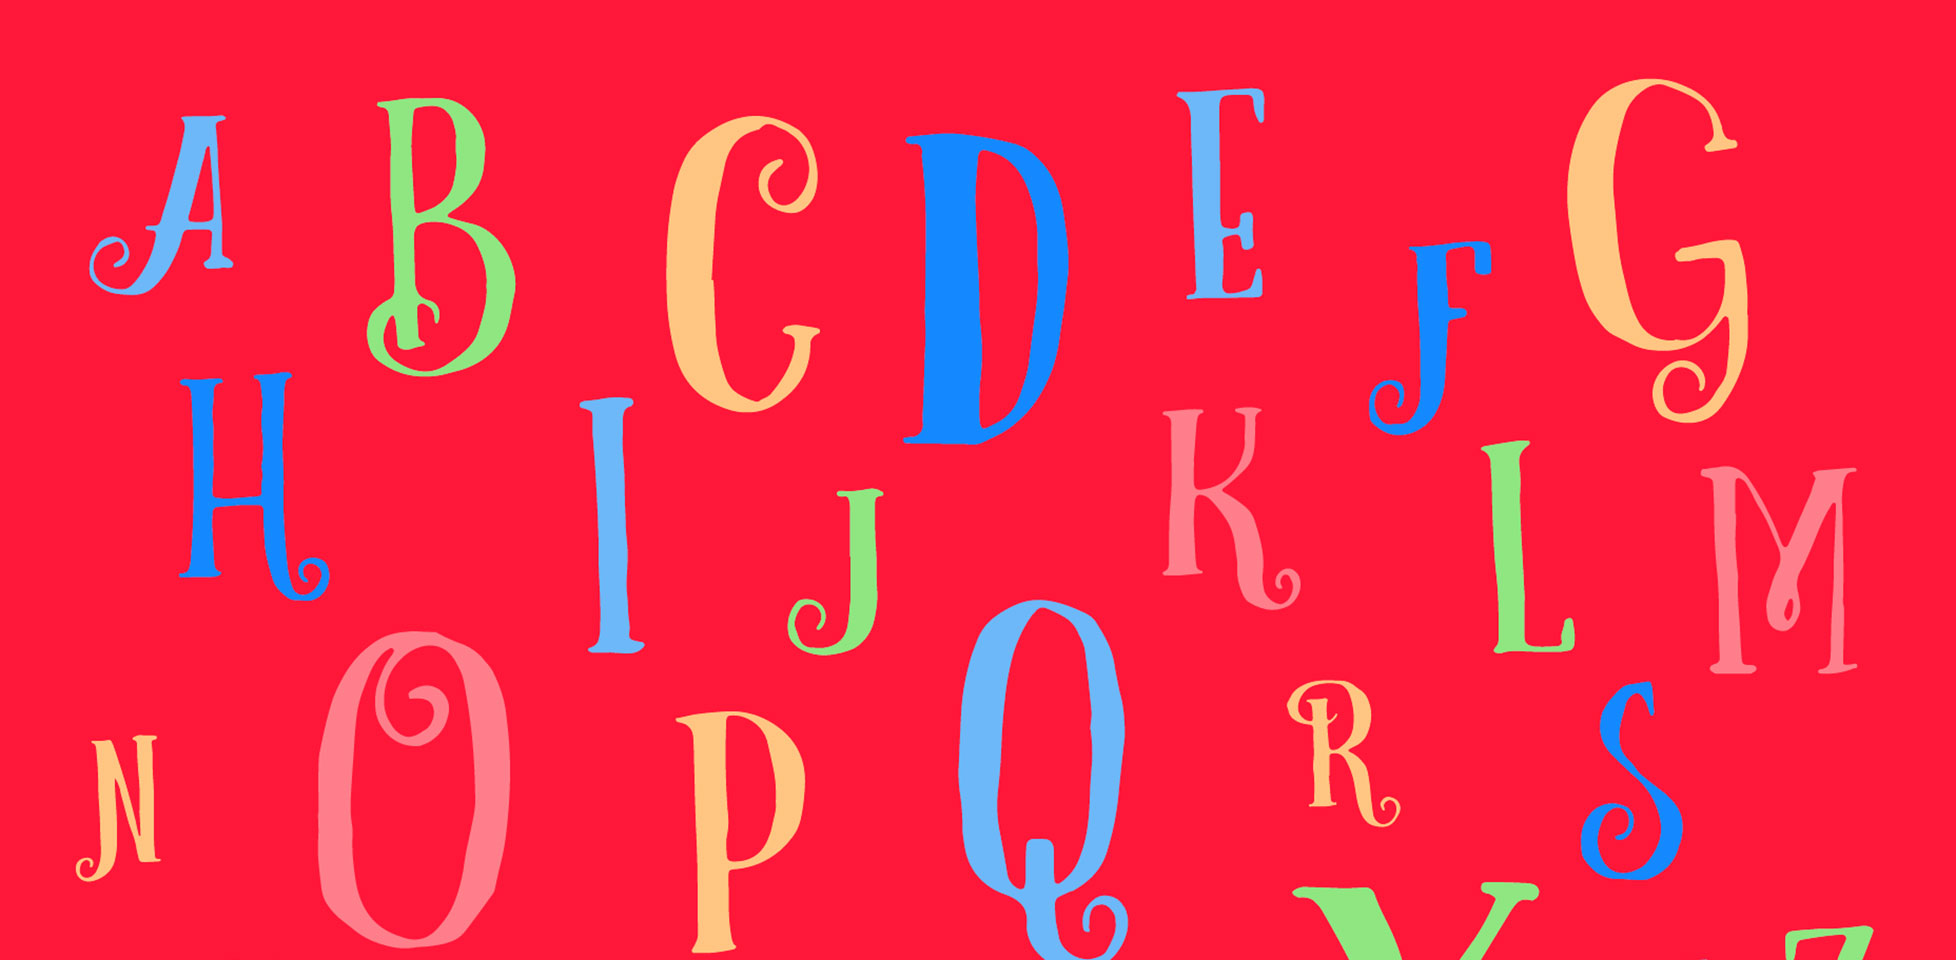 Free download: Curely font